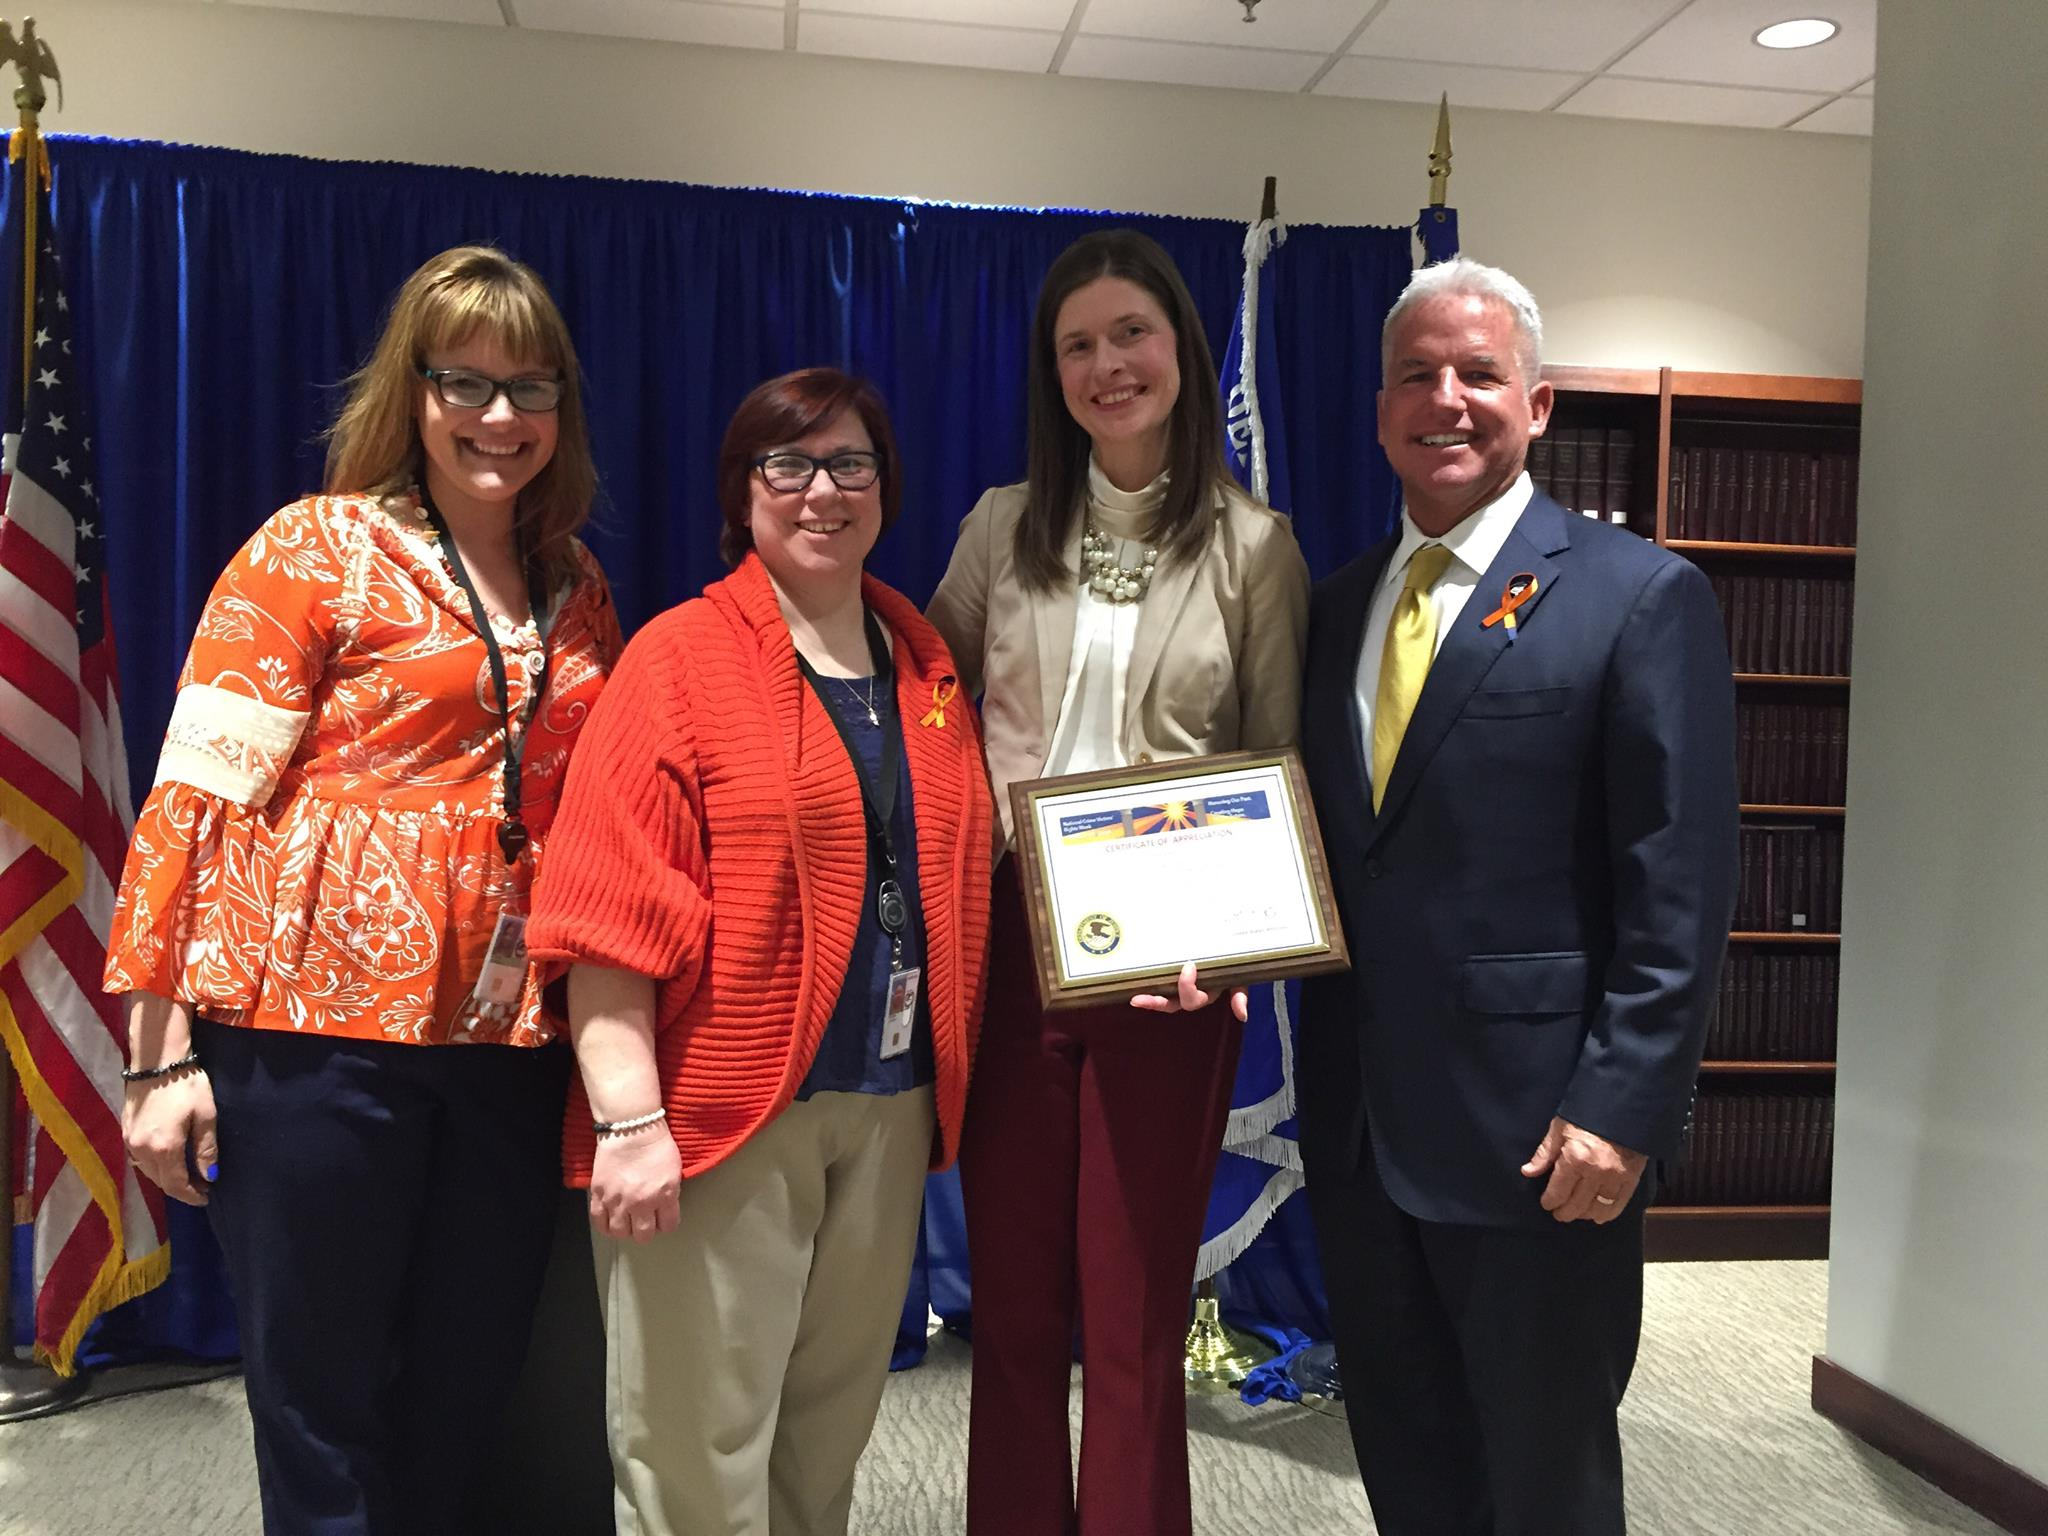 PATH Awarded Certificate of Appreciation for Outstanding Service on Behalf of Crime Victims